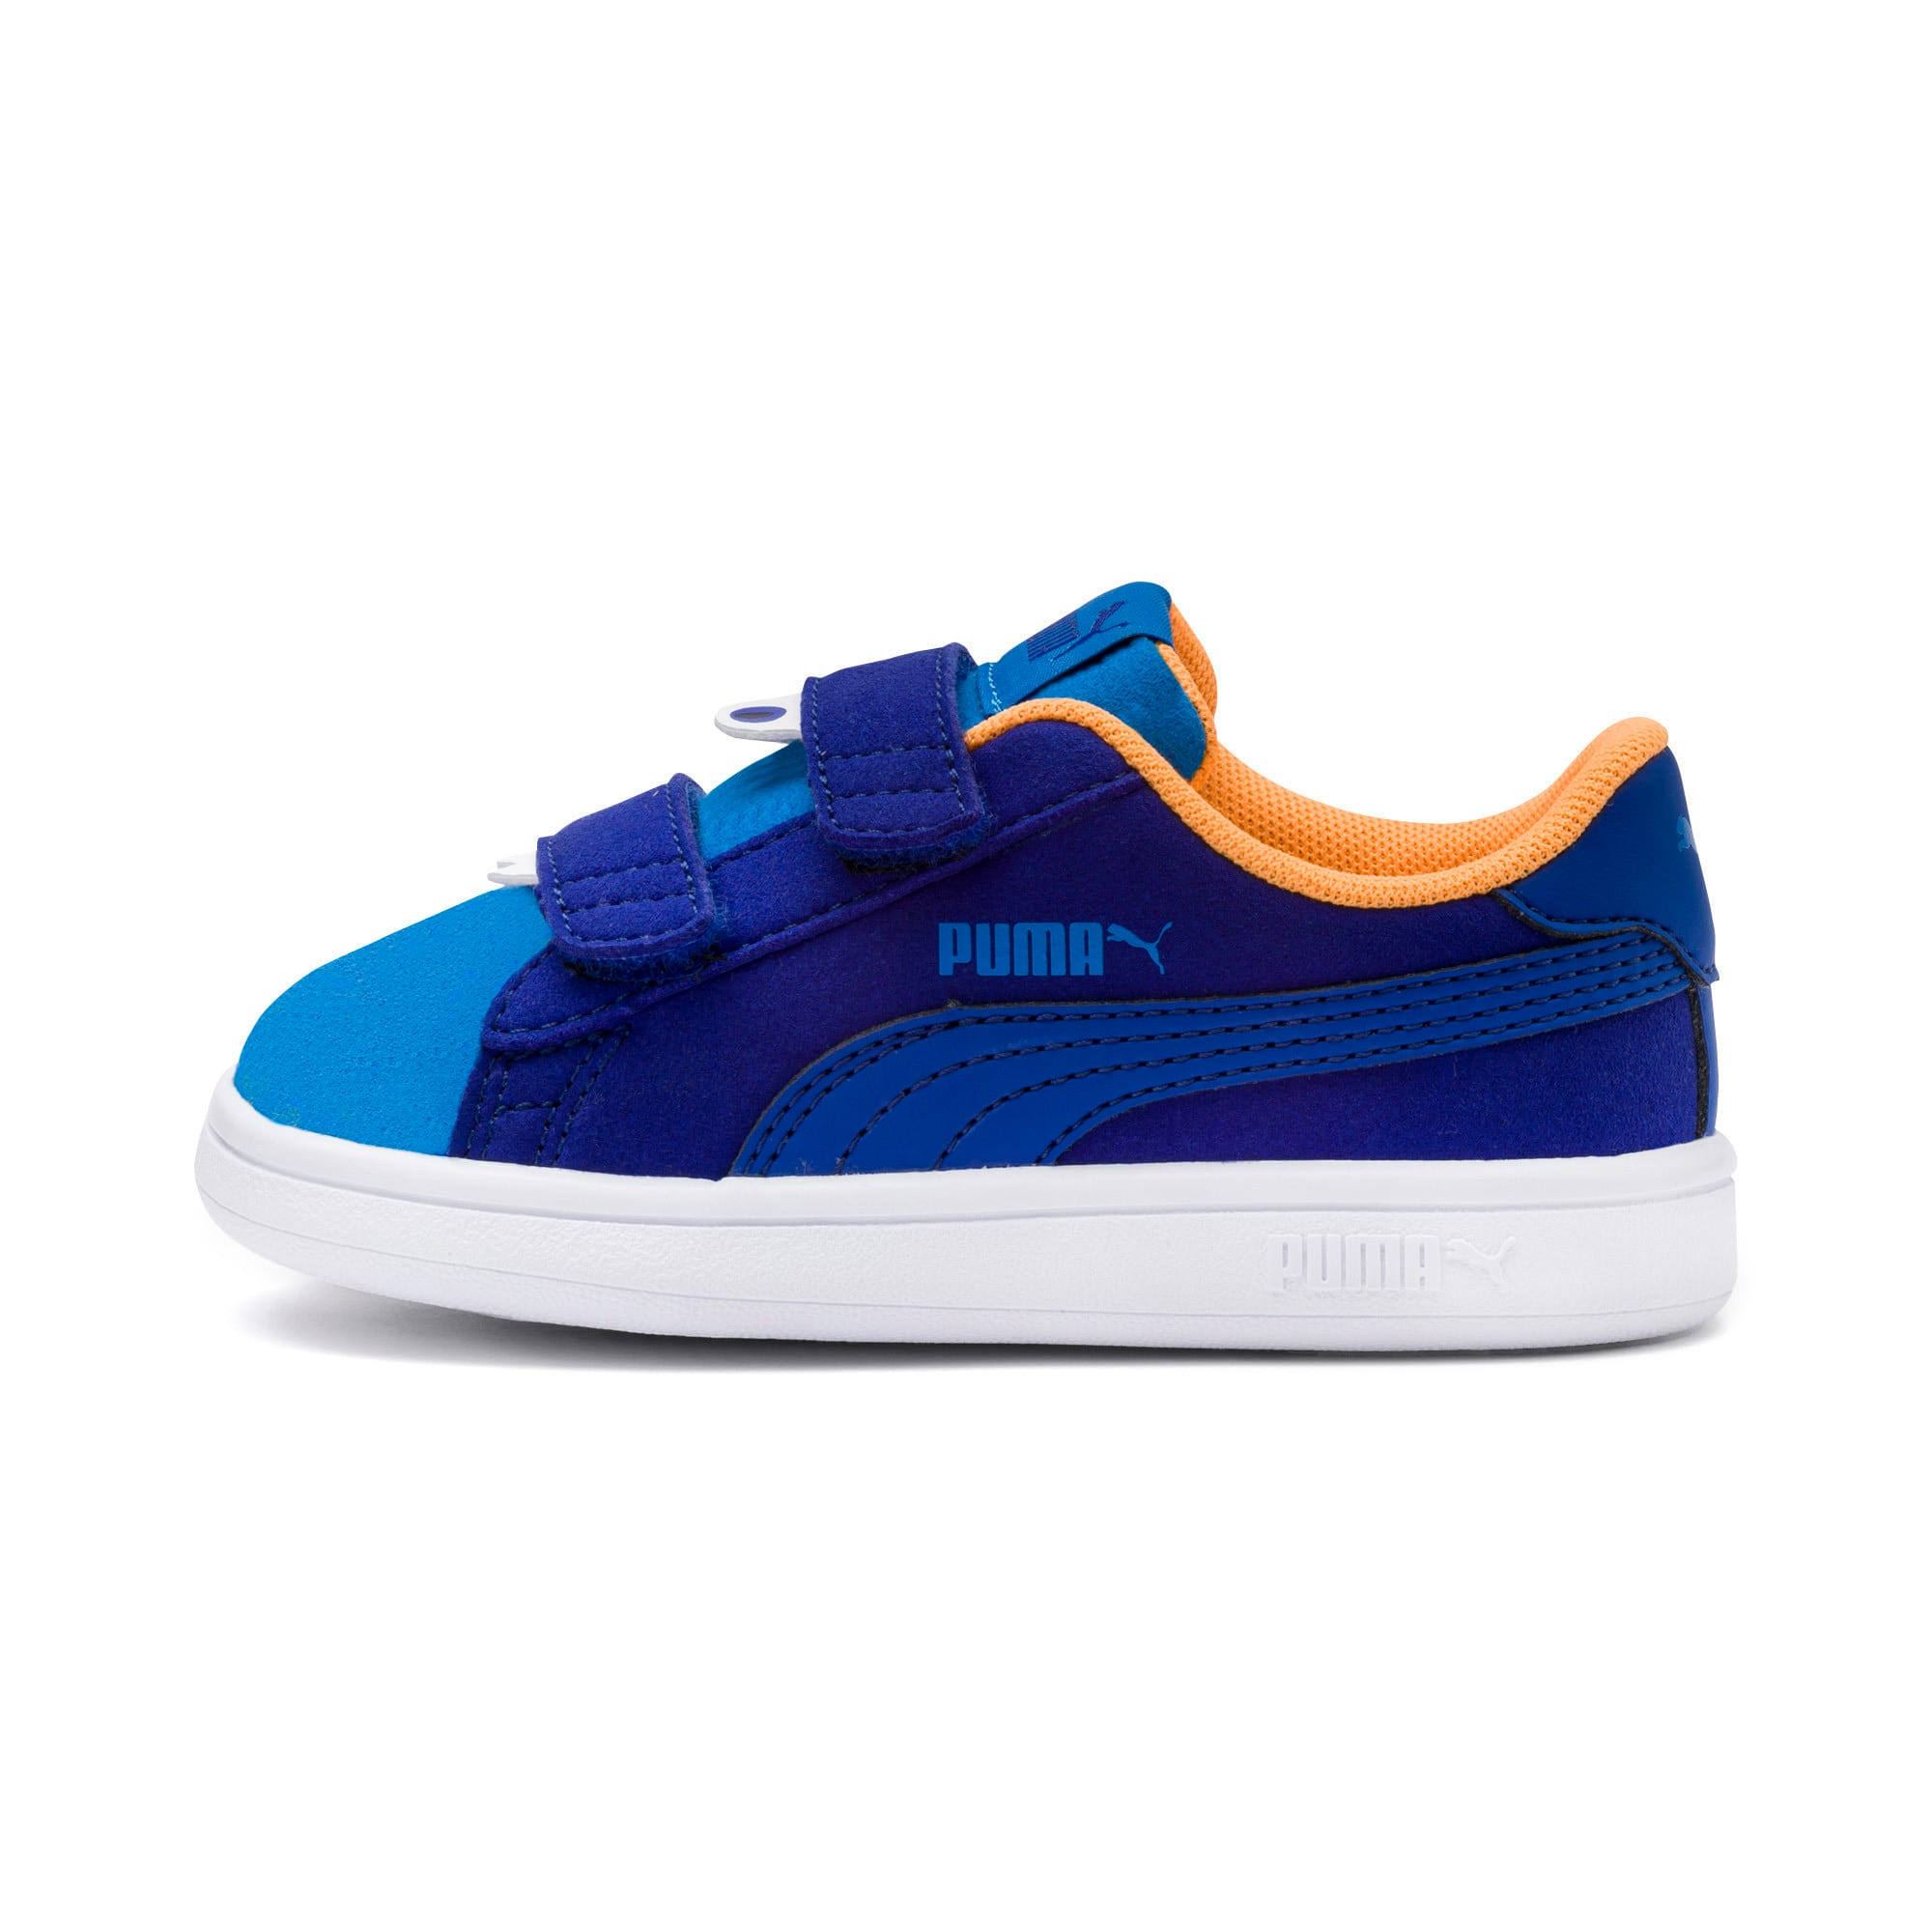 Thumbnail 1 of PUMA Smash v2 Monster Toddler Shoes, Sf Th Wb-I Bunting-Ornge-Wht, medium